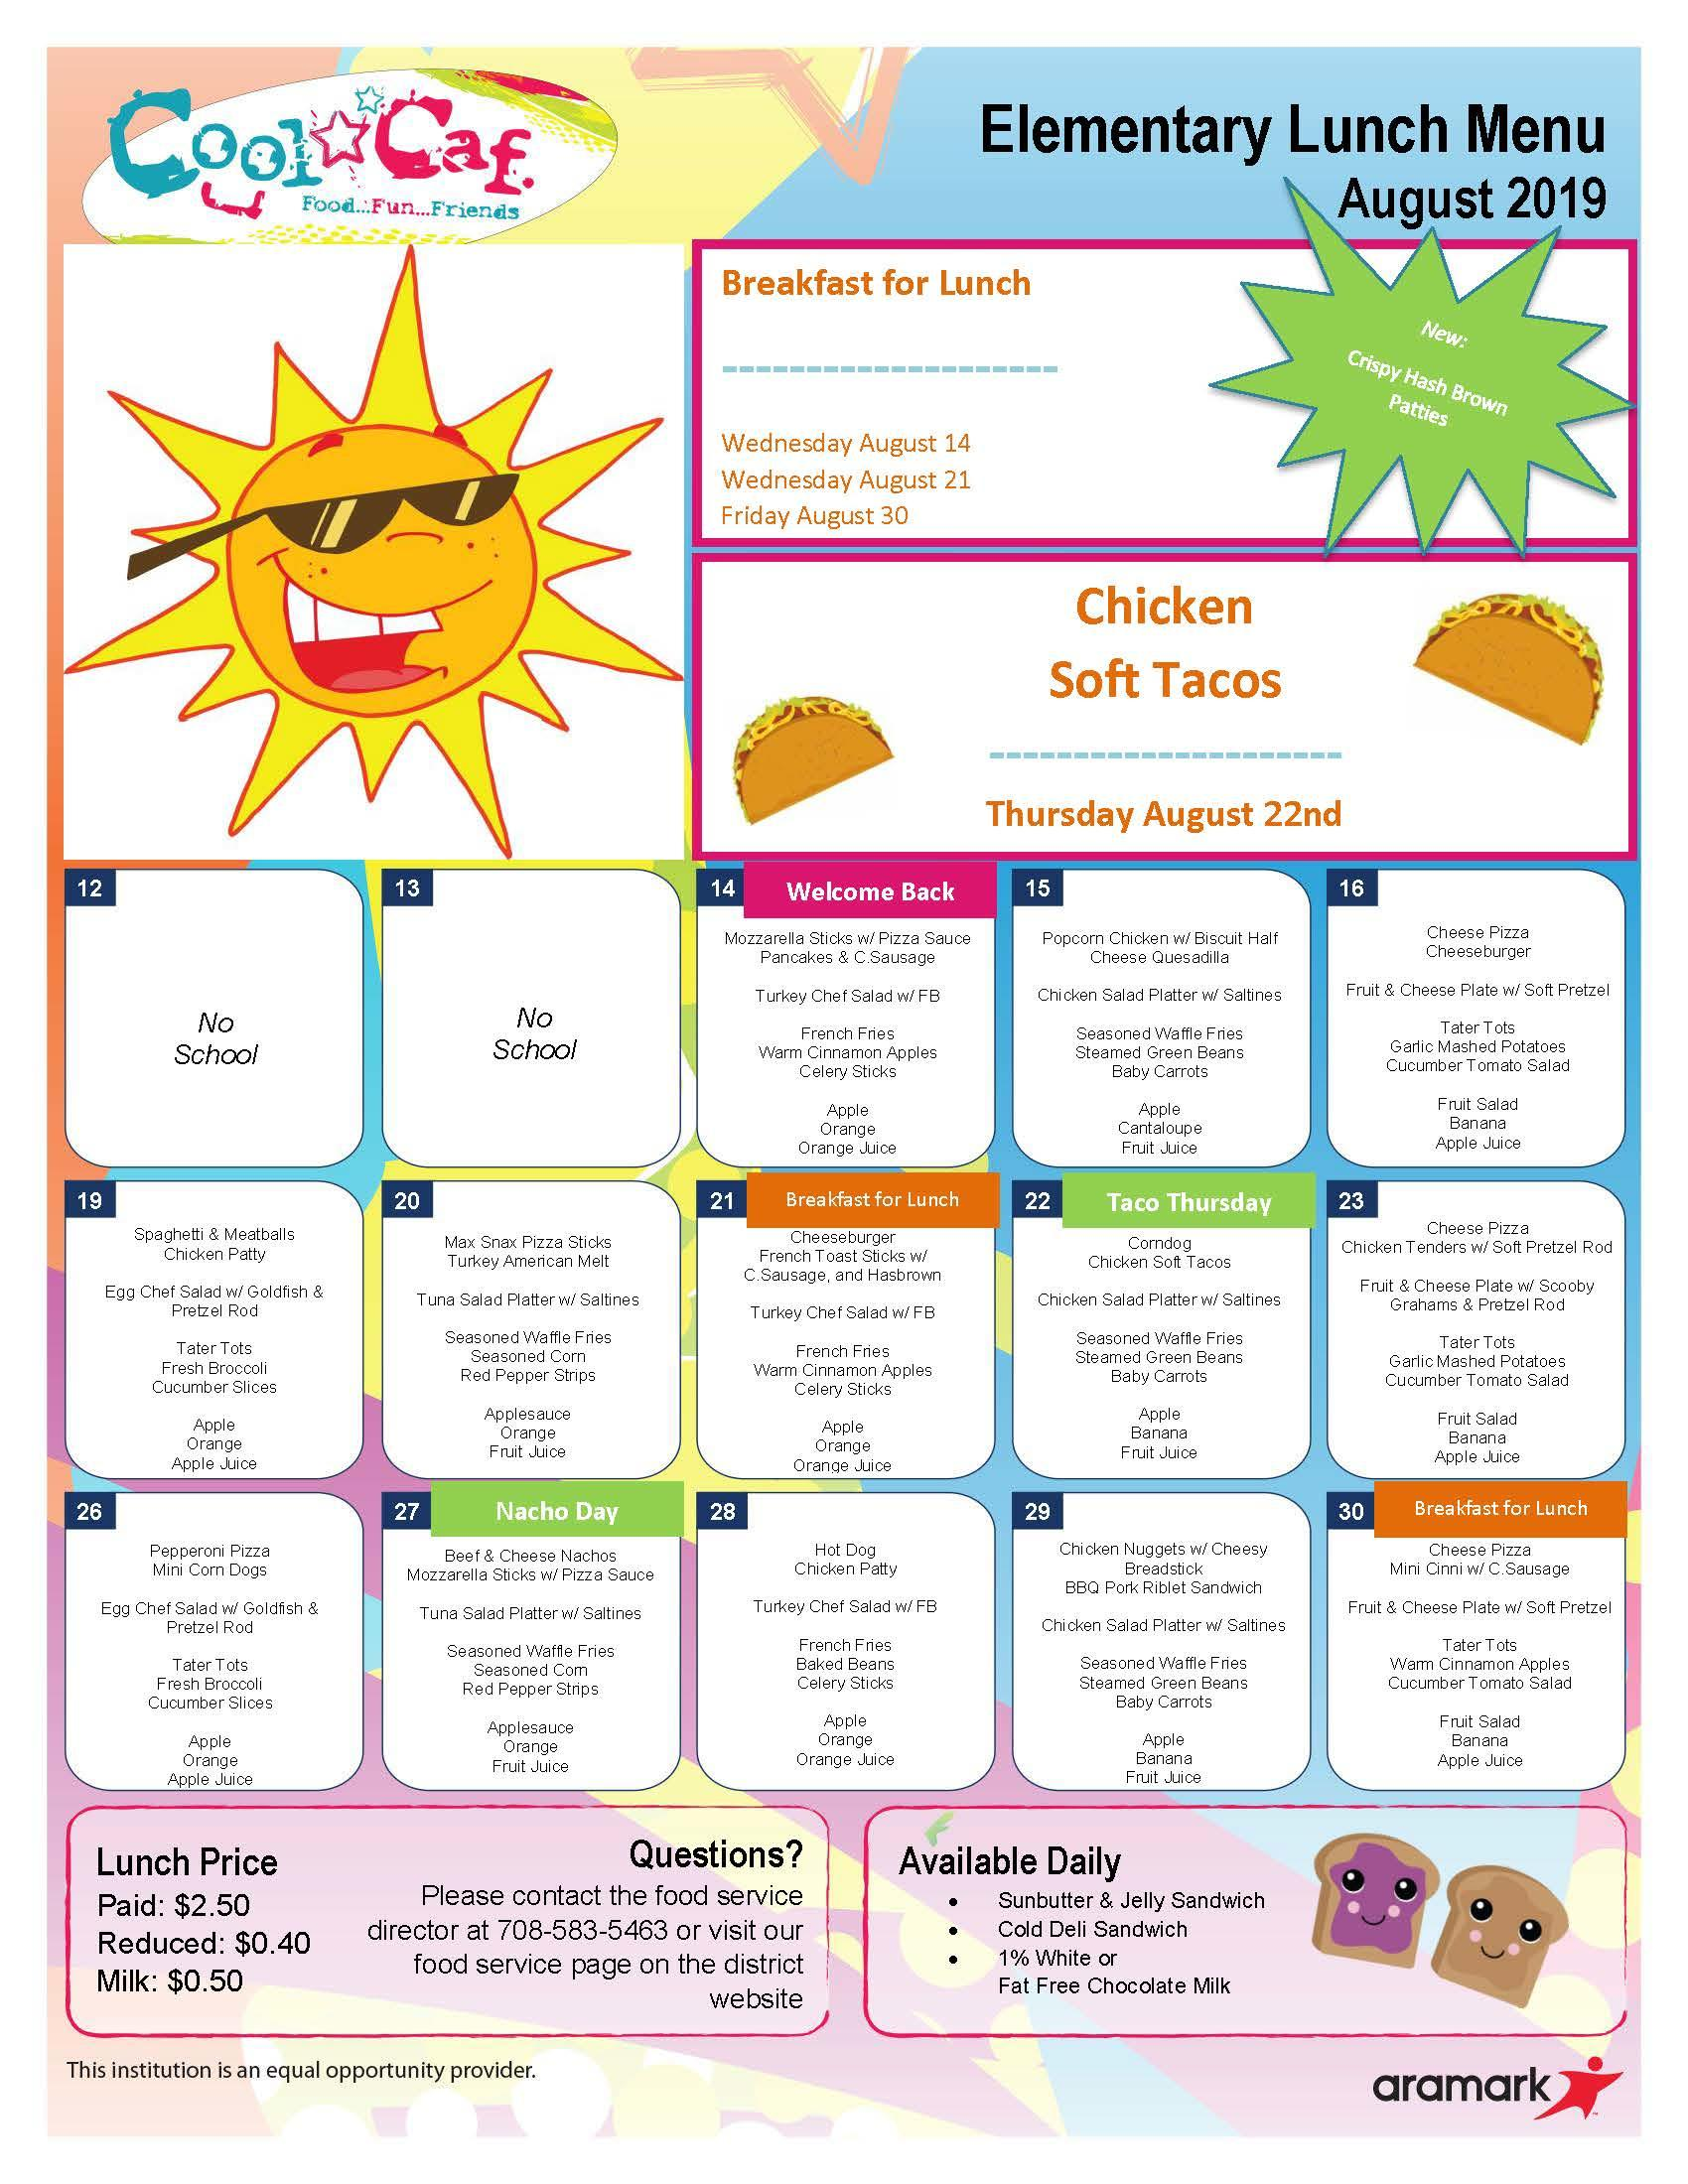 Elmwood lunch menu for August 2019